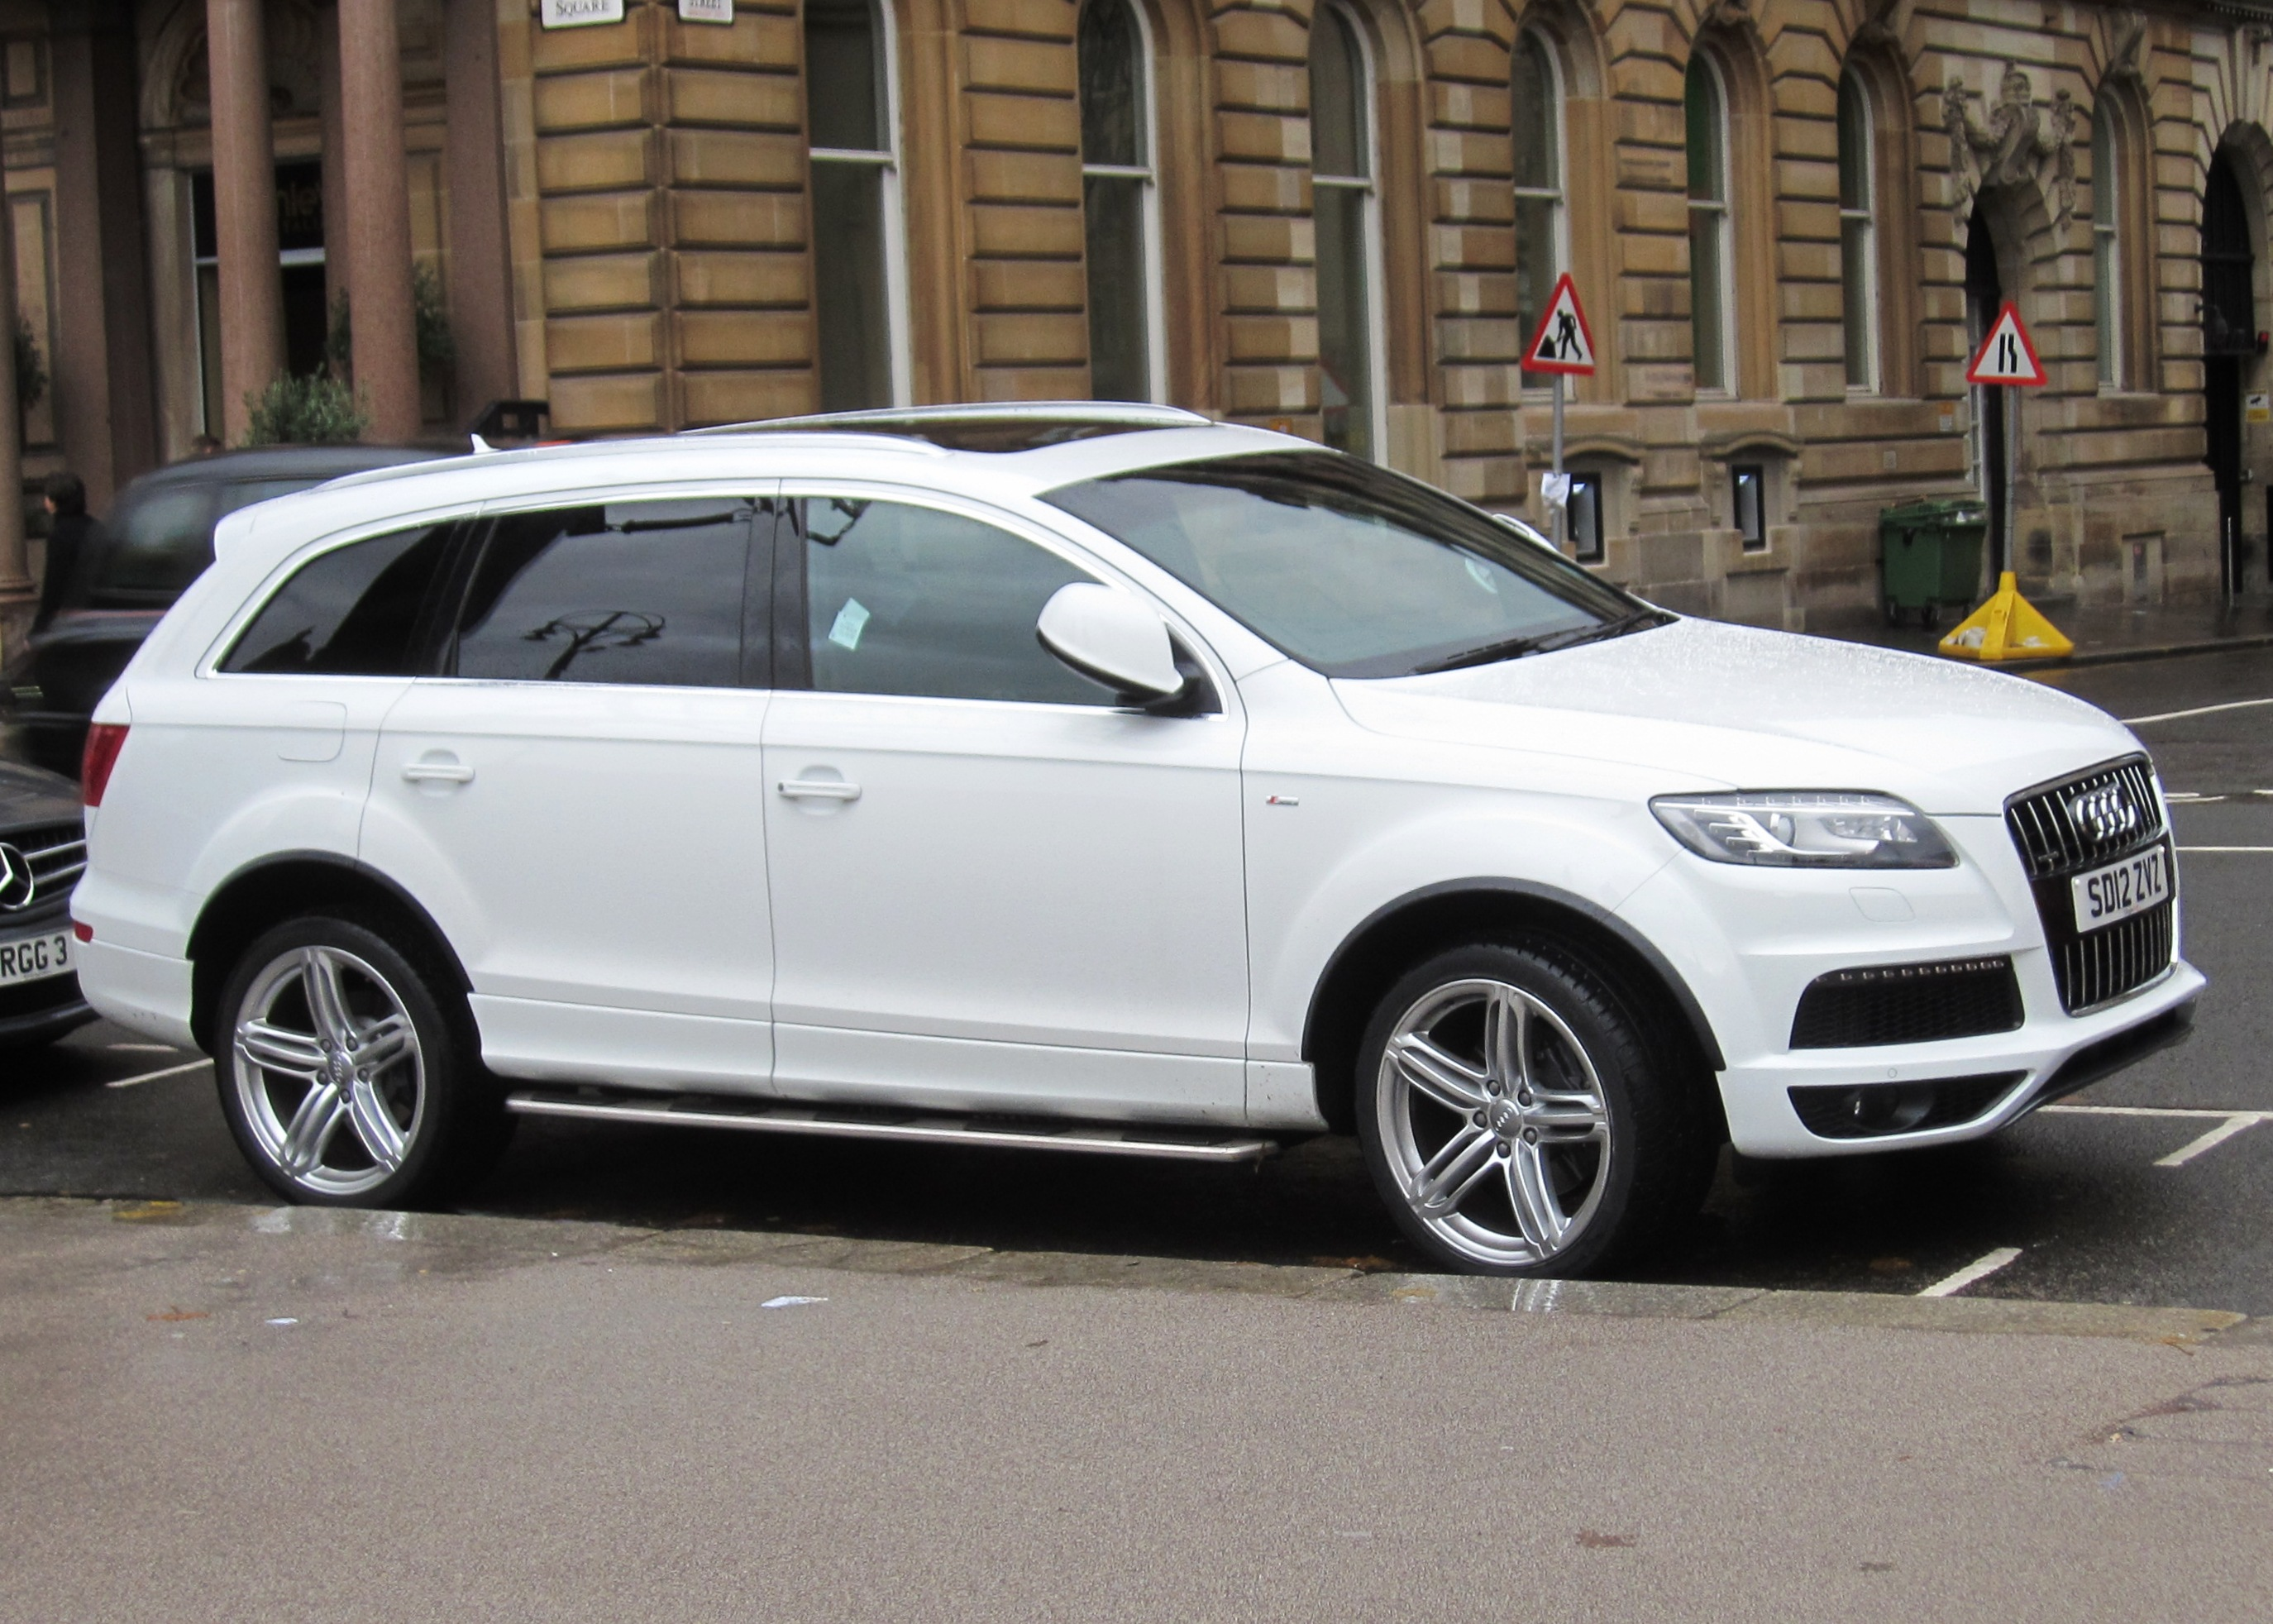 FileAudi Q TDI Clean Diesel Cc Registered April - Audi q7 tdi